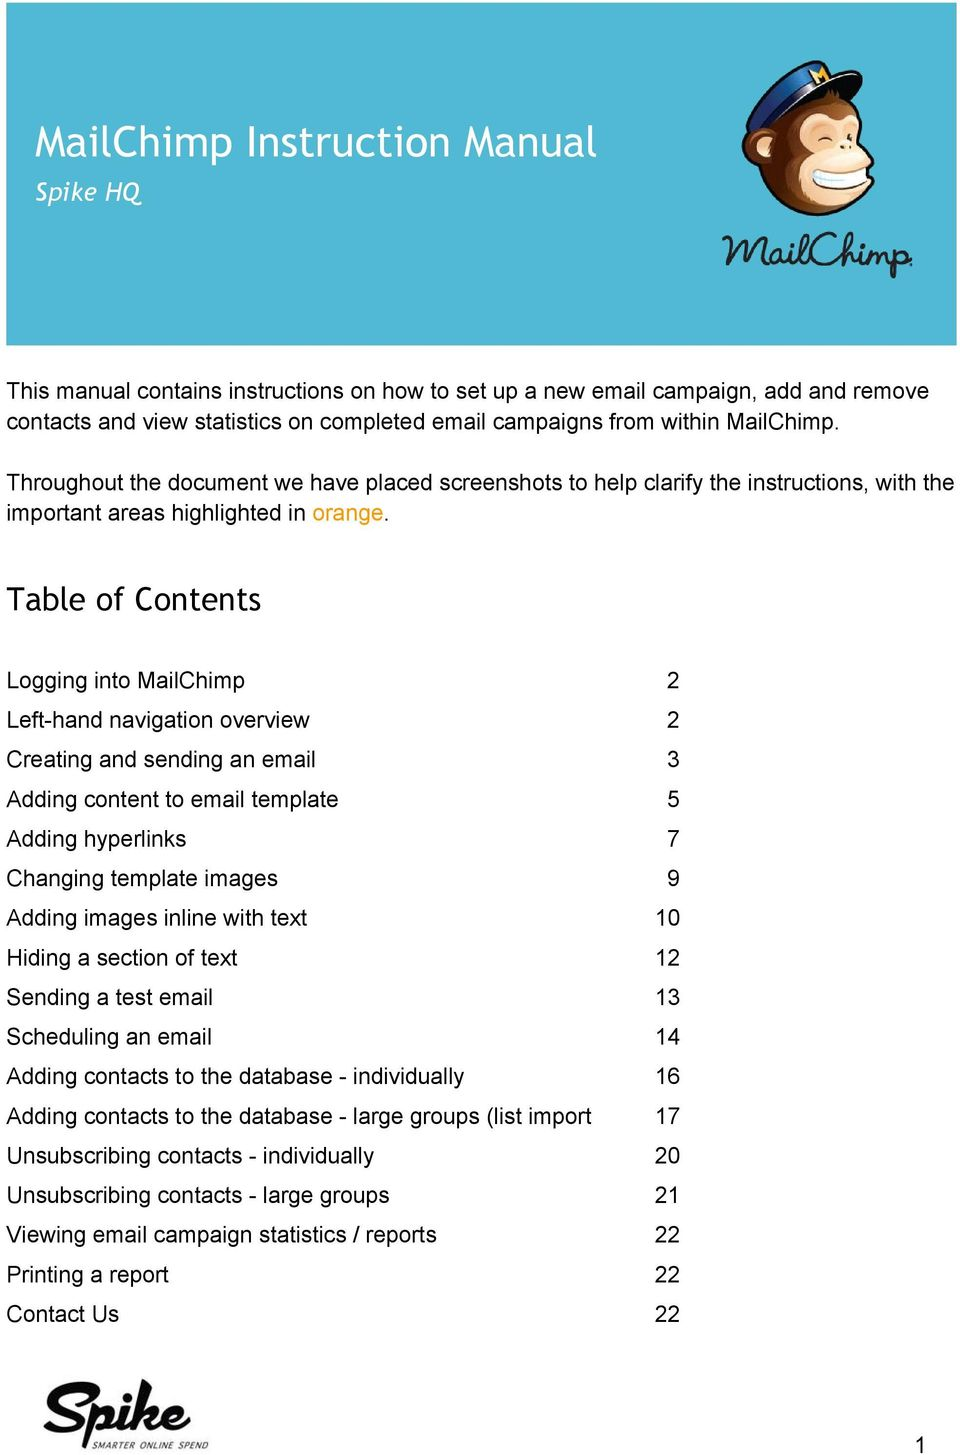 Mailchimp Instruction Manual Pdf